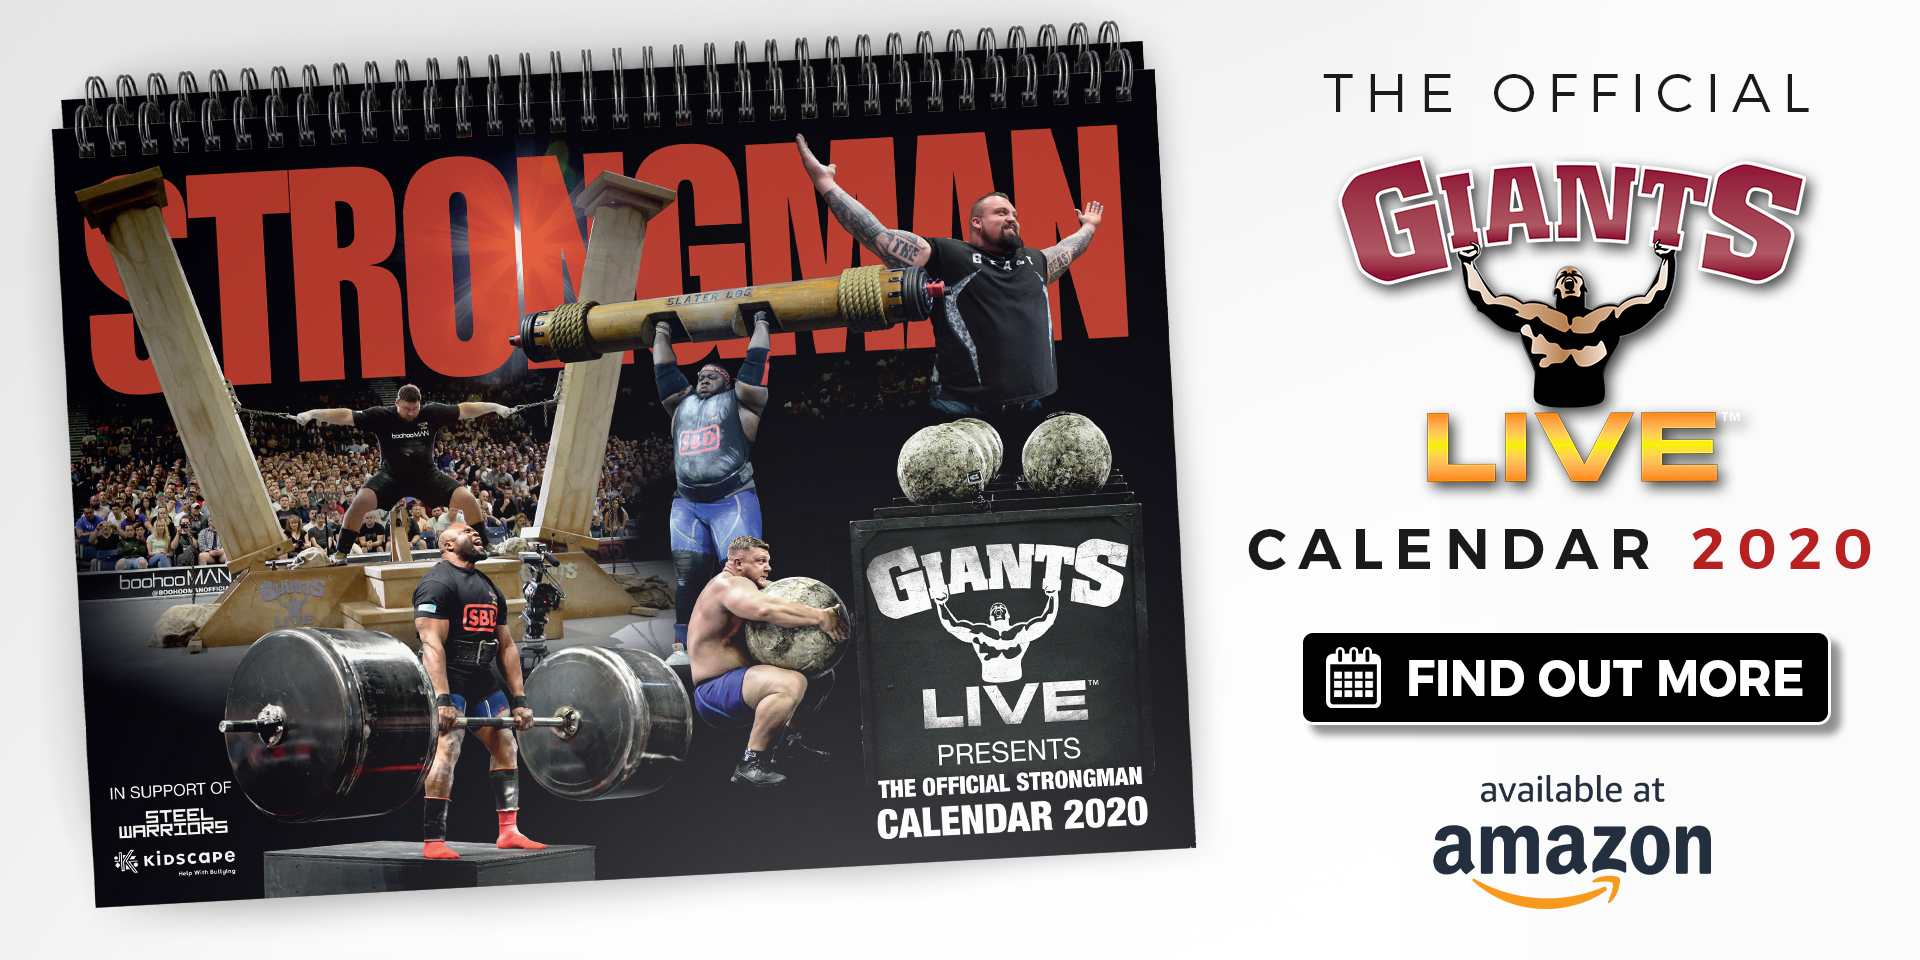 Ready for a strong 2020? Introducing our first Charity Strongman Calendar!